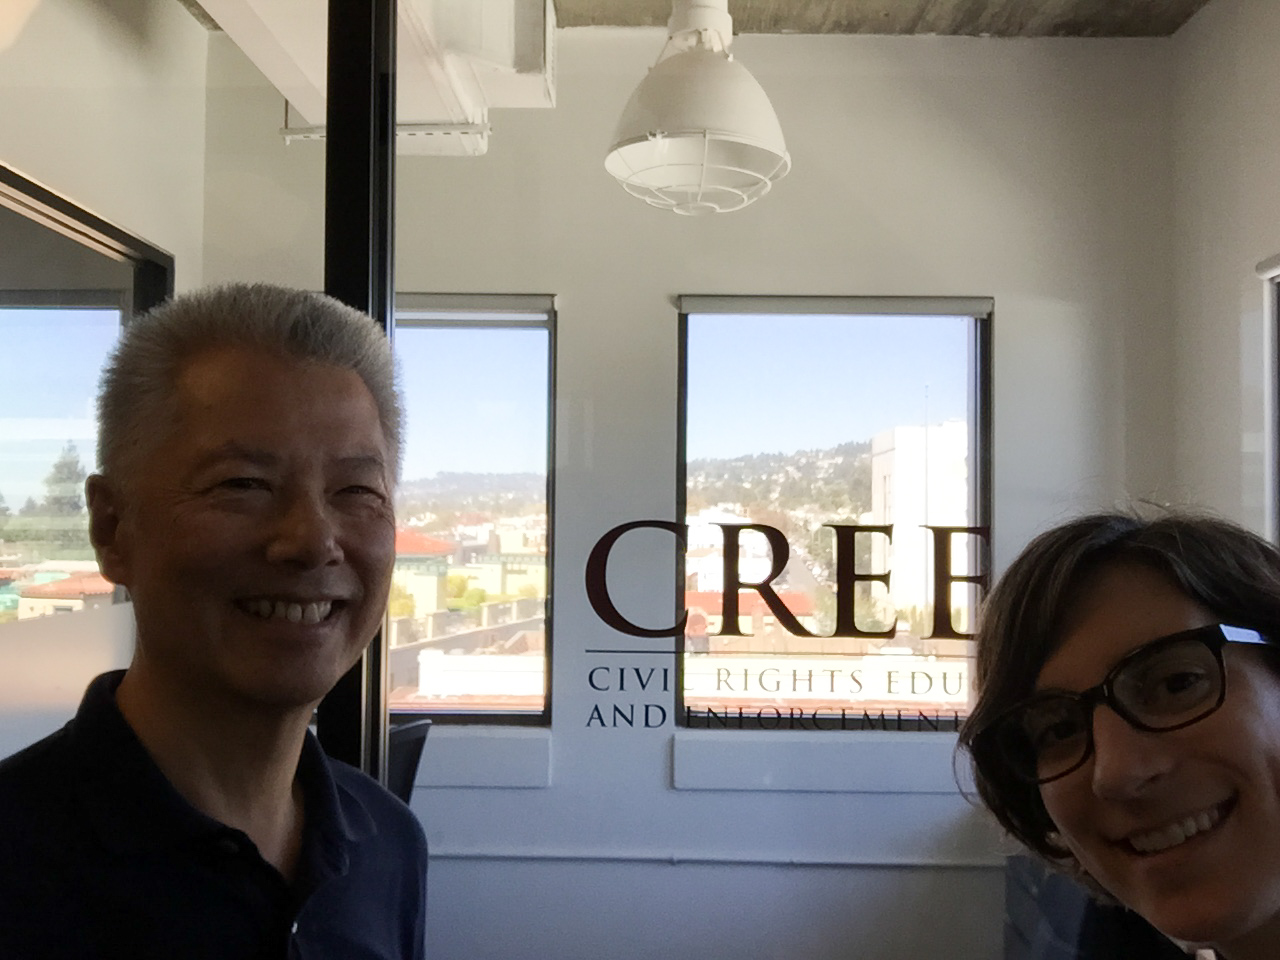 Image:  Same glass window with CREEC logo, but with two people peeking into the photo from the left and right.  On the left, an Asian man; on the right a white woman.